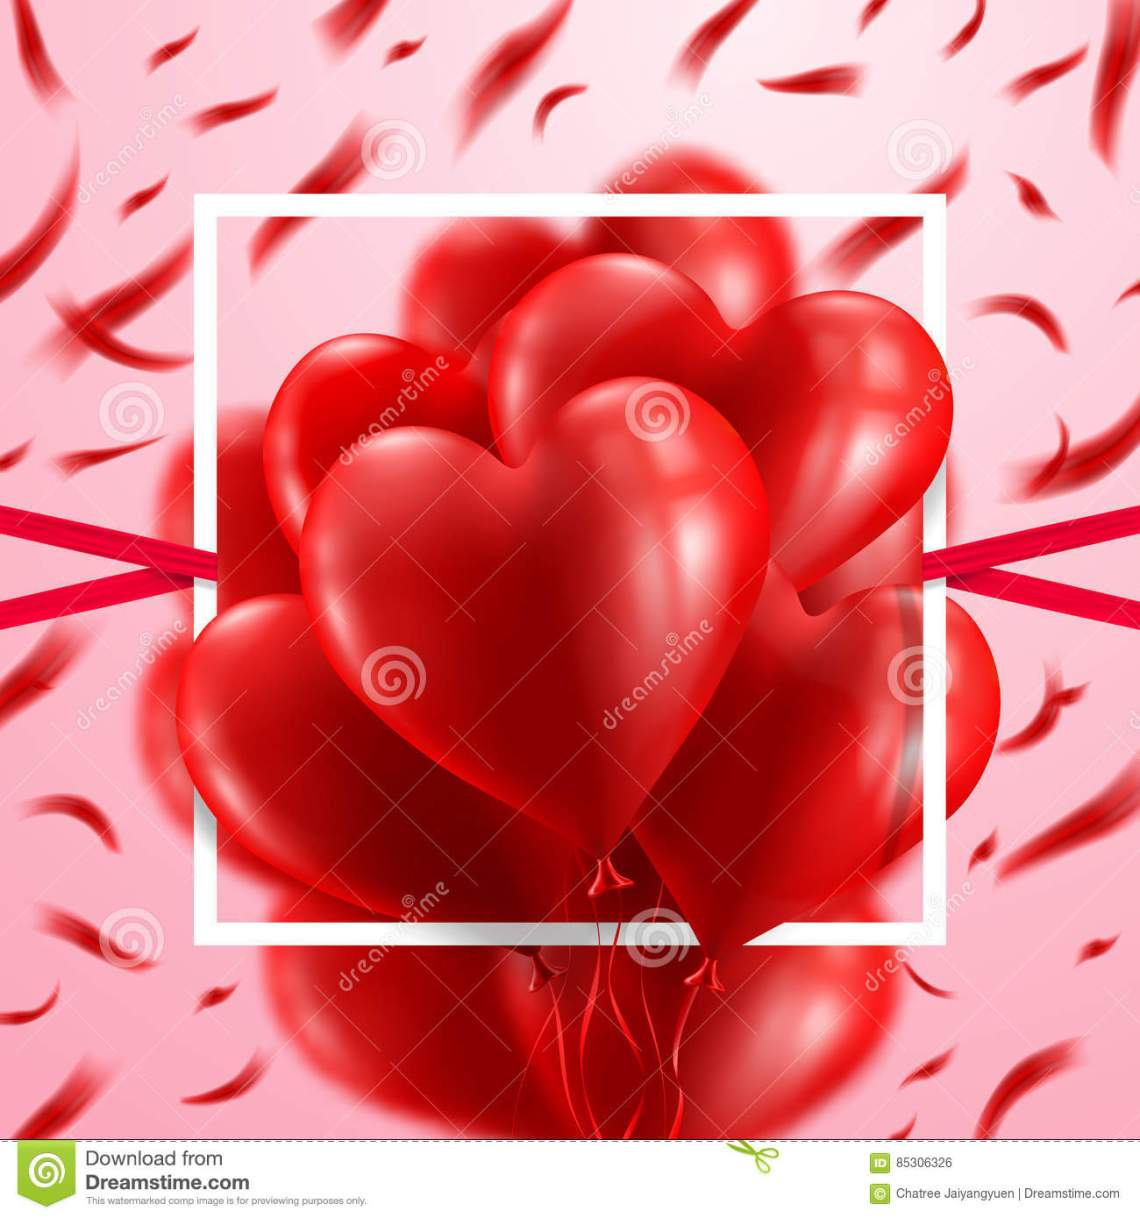 Download Red Heart Balloons Valentine`s Day Card.Love And Valentine ...